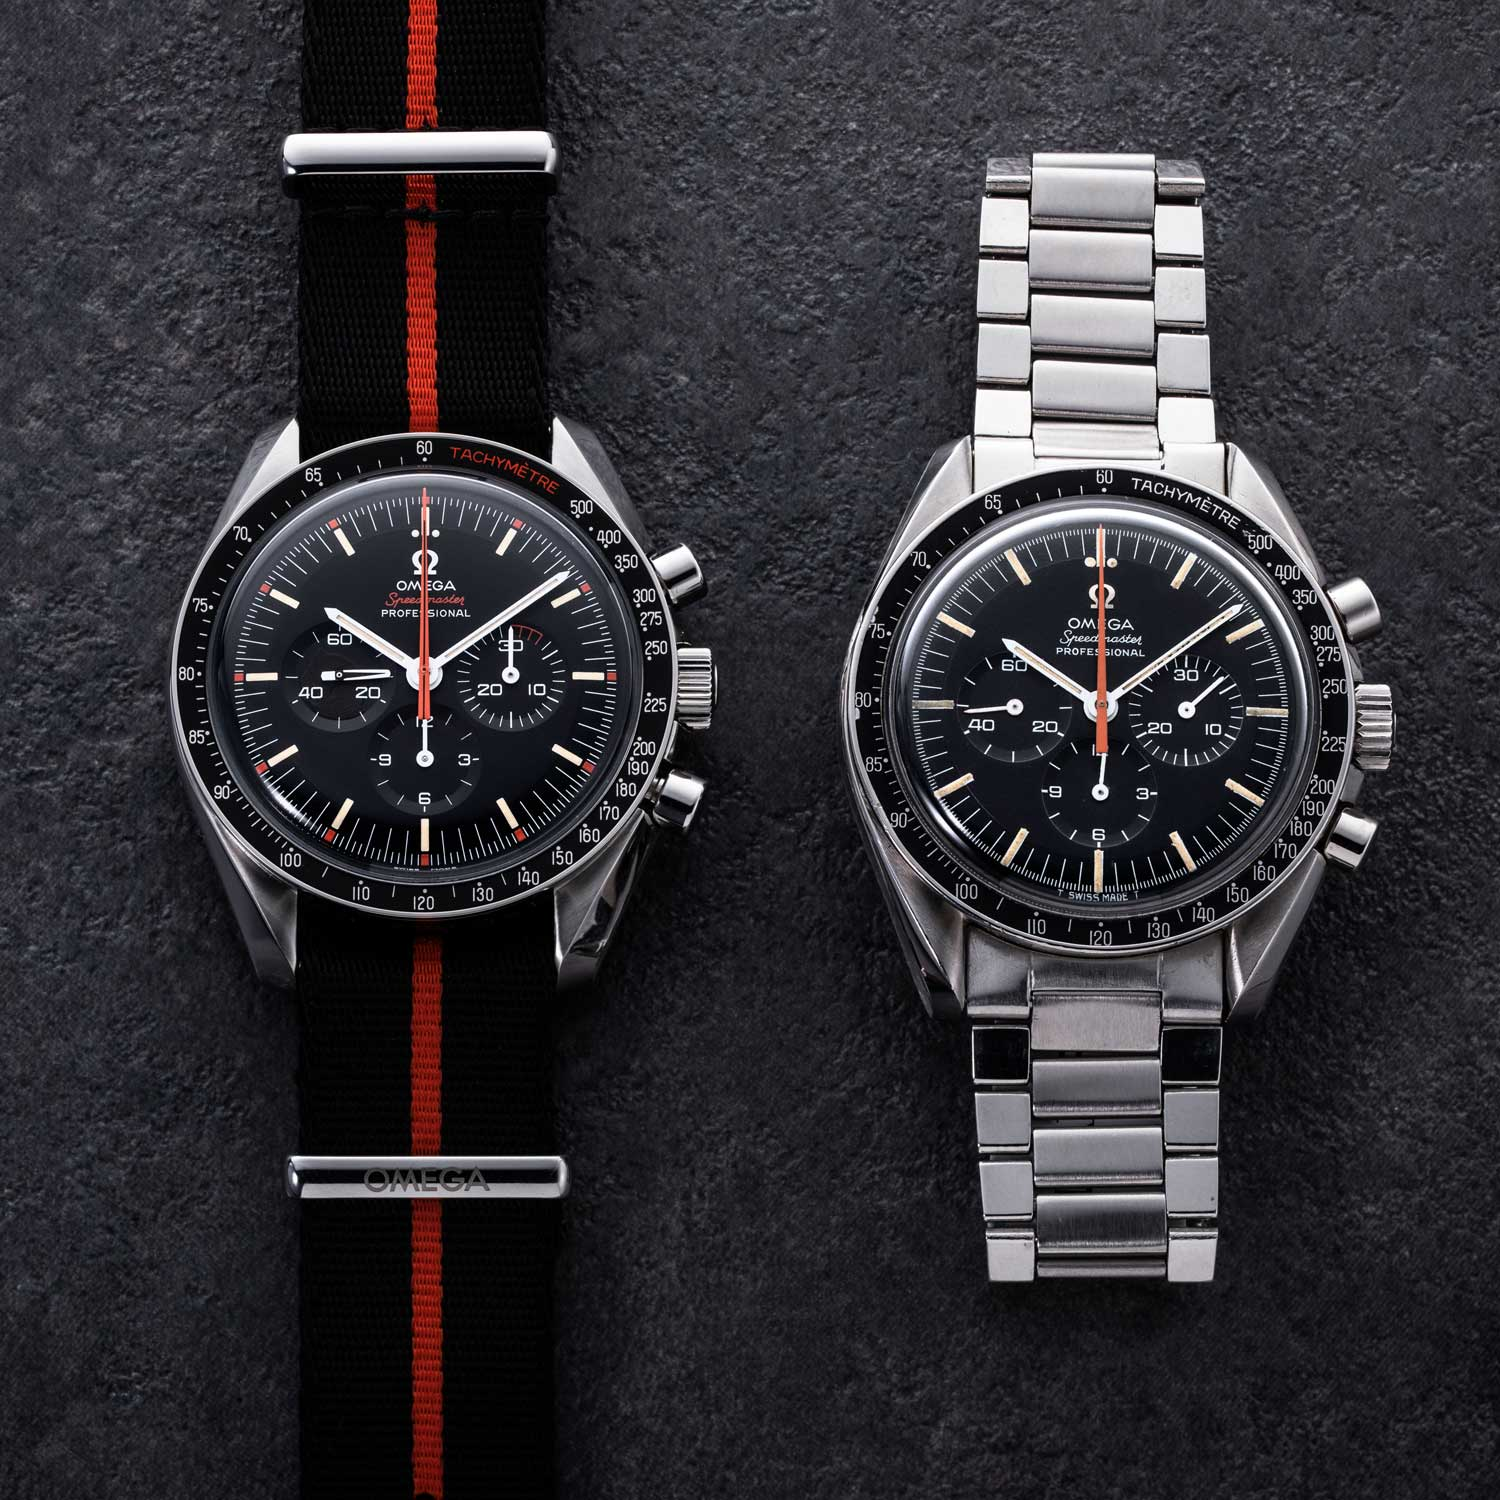 "In 2018, Omega launched a homage to the 1968 watch with the Speedmaster Limited Edition 42 Mm ""Ultraman"" (2012 pieces); the watch was given many curious details, such as the orange silhouette of Ultraman on the 9 o'clock subdial, only visible under UV light (Image © Revolution)"